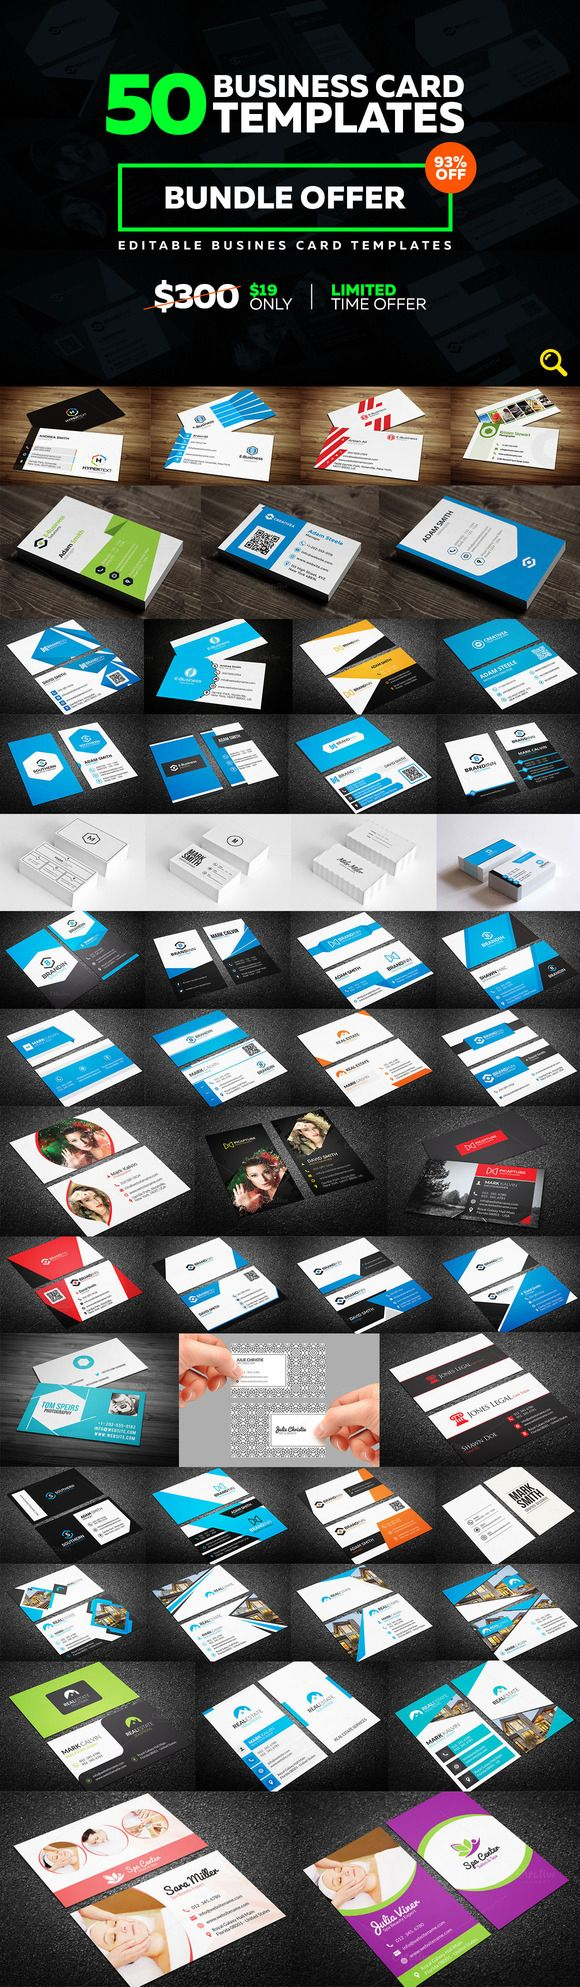 50 Creative Business Card Bundle by Arslan on @creativemarket